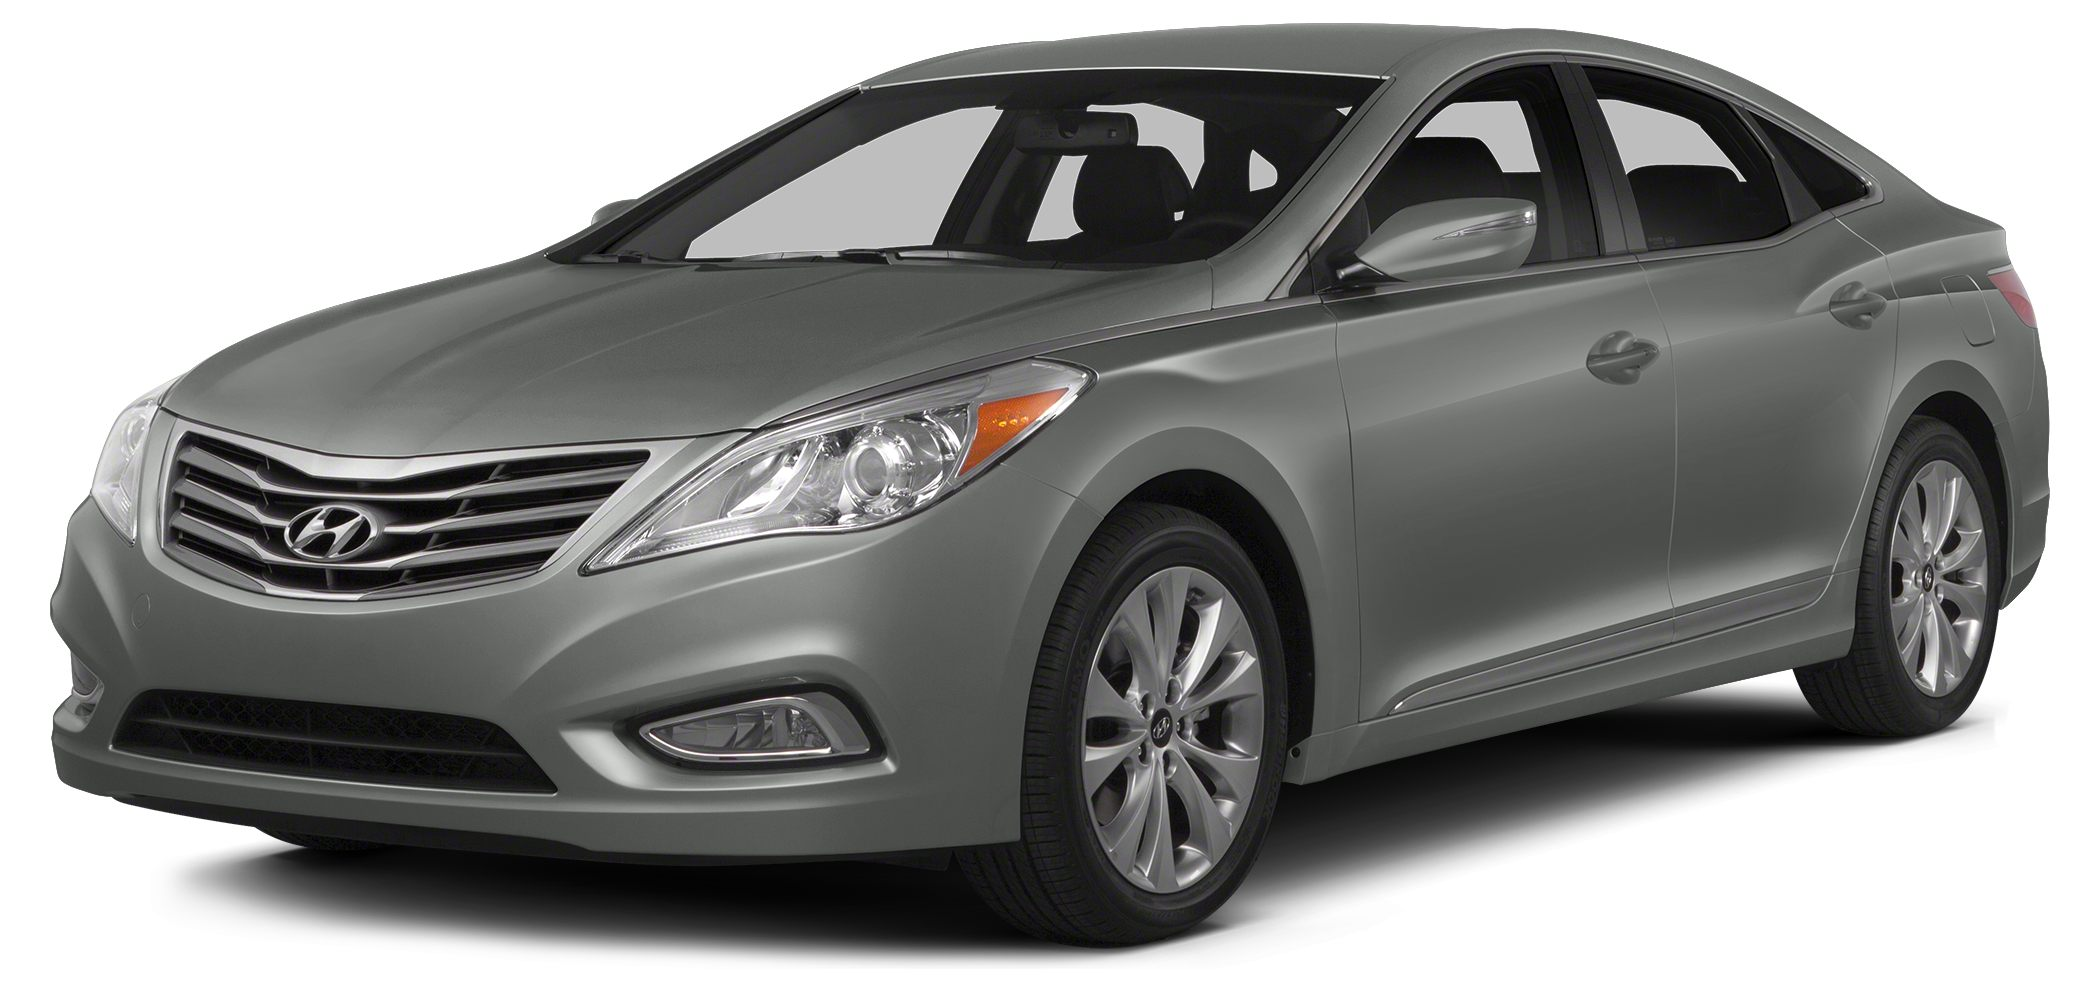 2014 Hyundai Azera Limited 2014 Hyundai Azera Limited in Gray and One Year Free Maintanence Heate